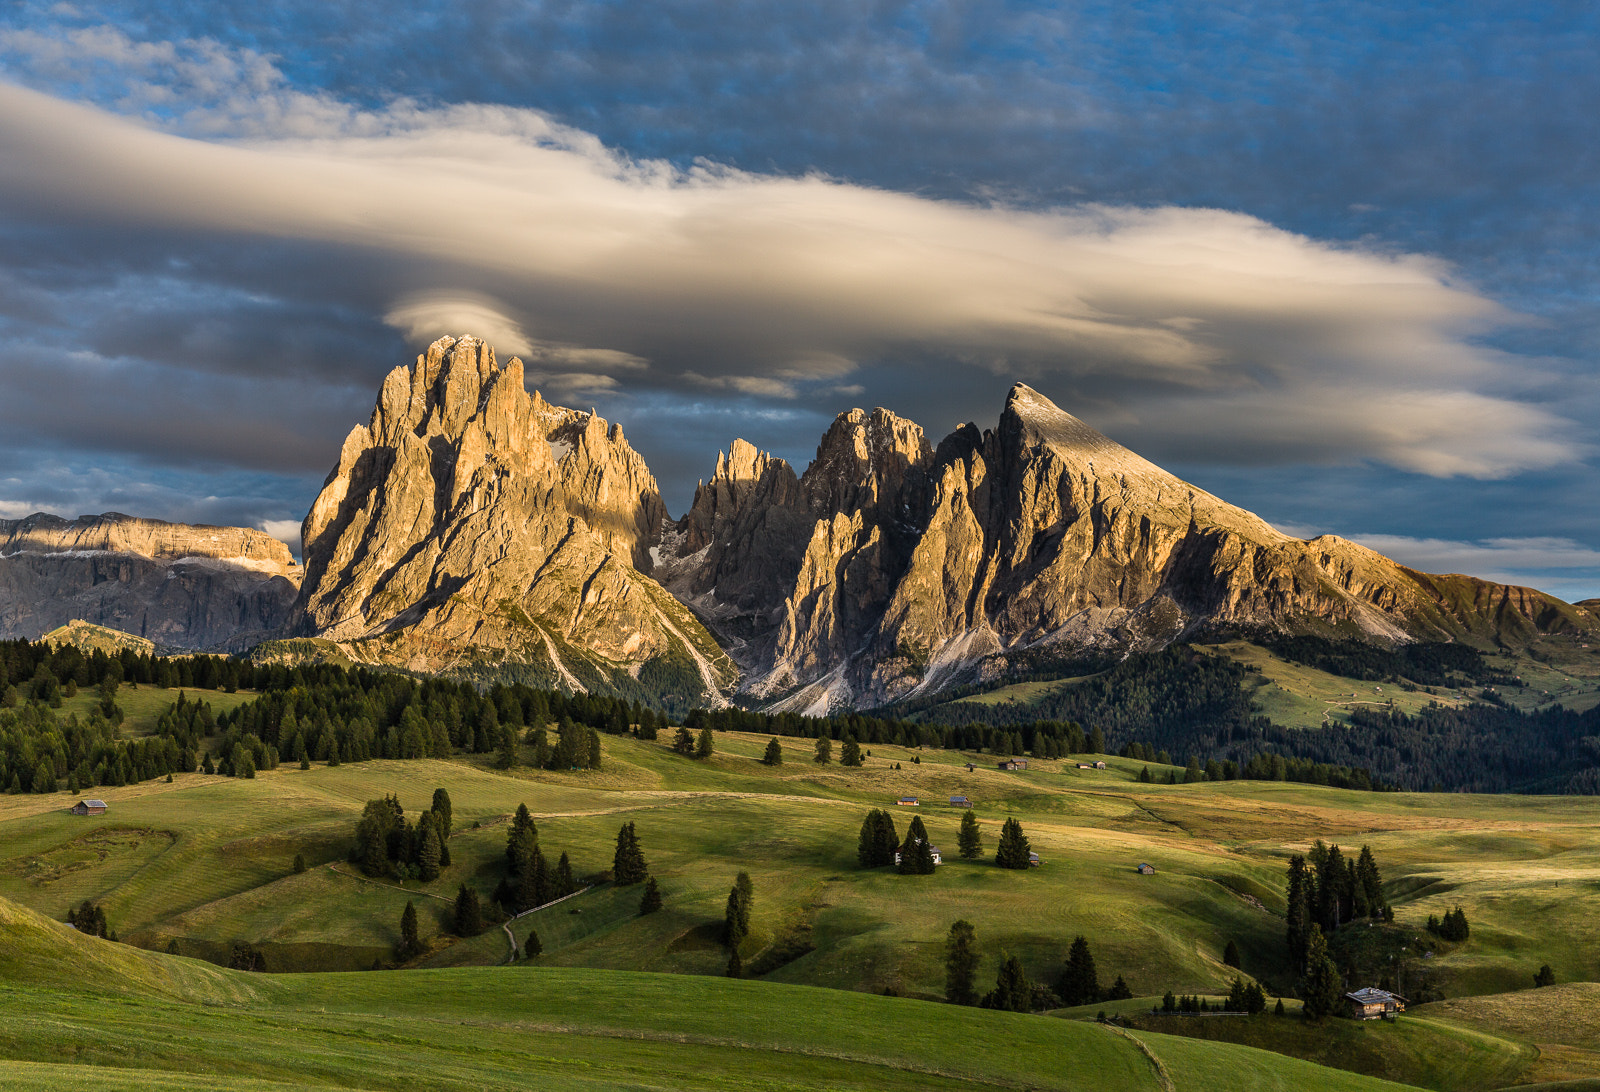 Photograph Clouds at Alpe di Siusi by Hans Kruse on 500px